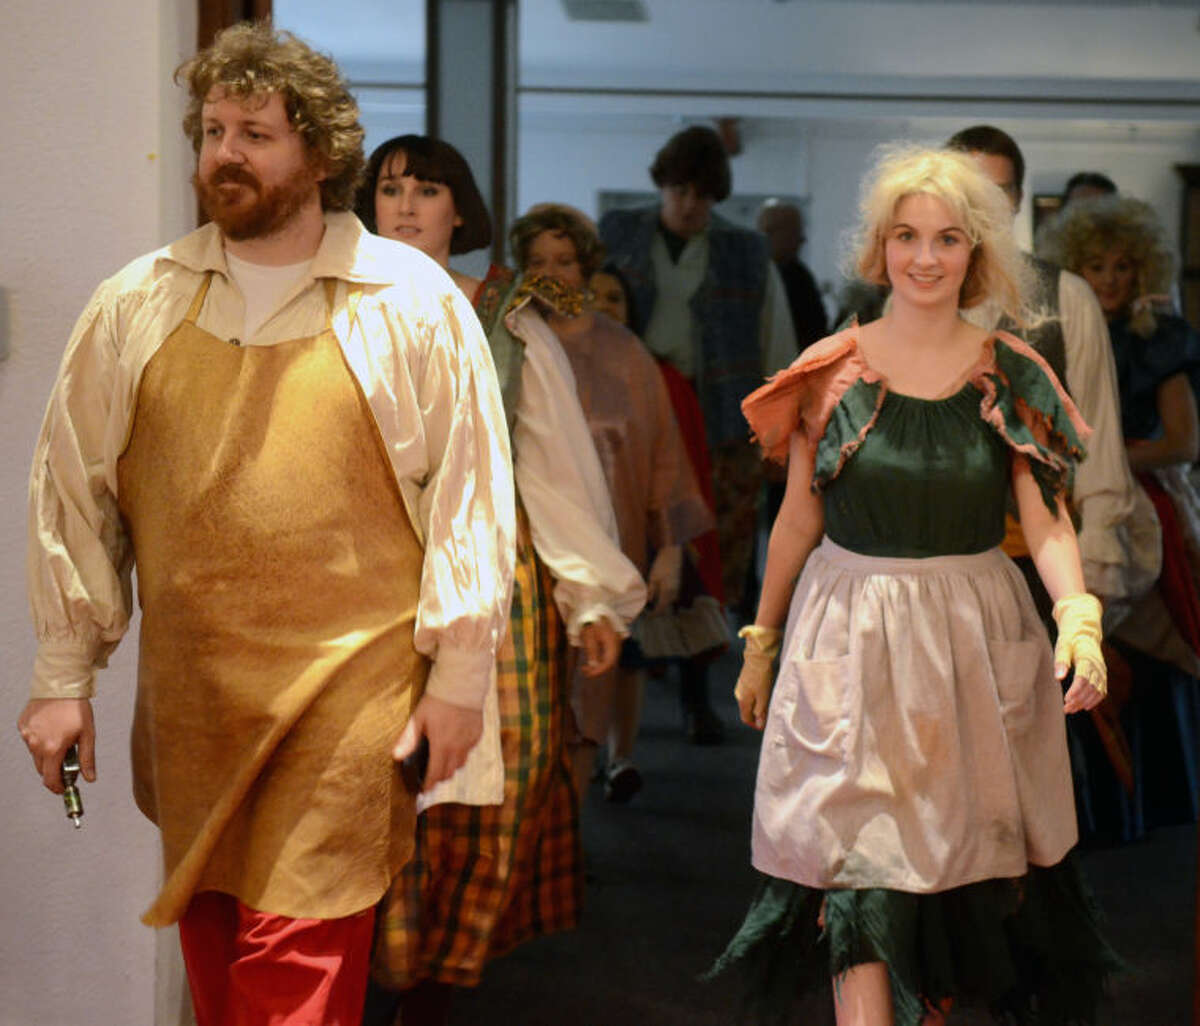 """Dress rehearsal of the production """"Into the Woods"""" on Tuesday at the Genesis Center. James Durbin/Reporter-Telegram"""